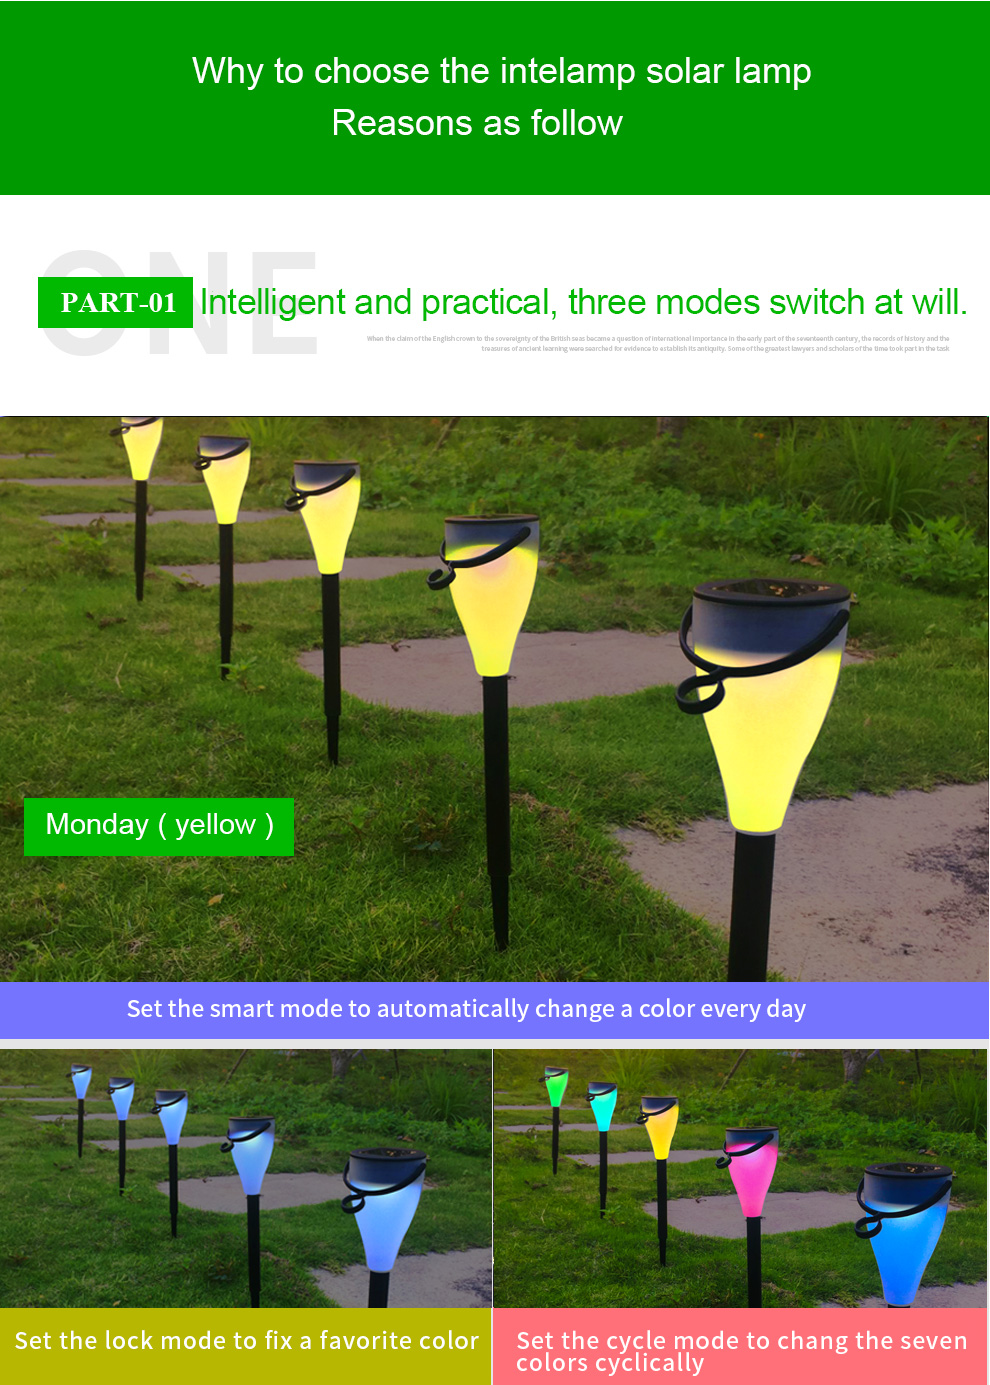 Ivanka trump's favorite 7 Color Changing Solar Lawn Light Perfect Decoration Lighting for Garden Pathways & Flower Beds, Yard